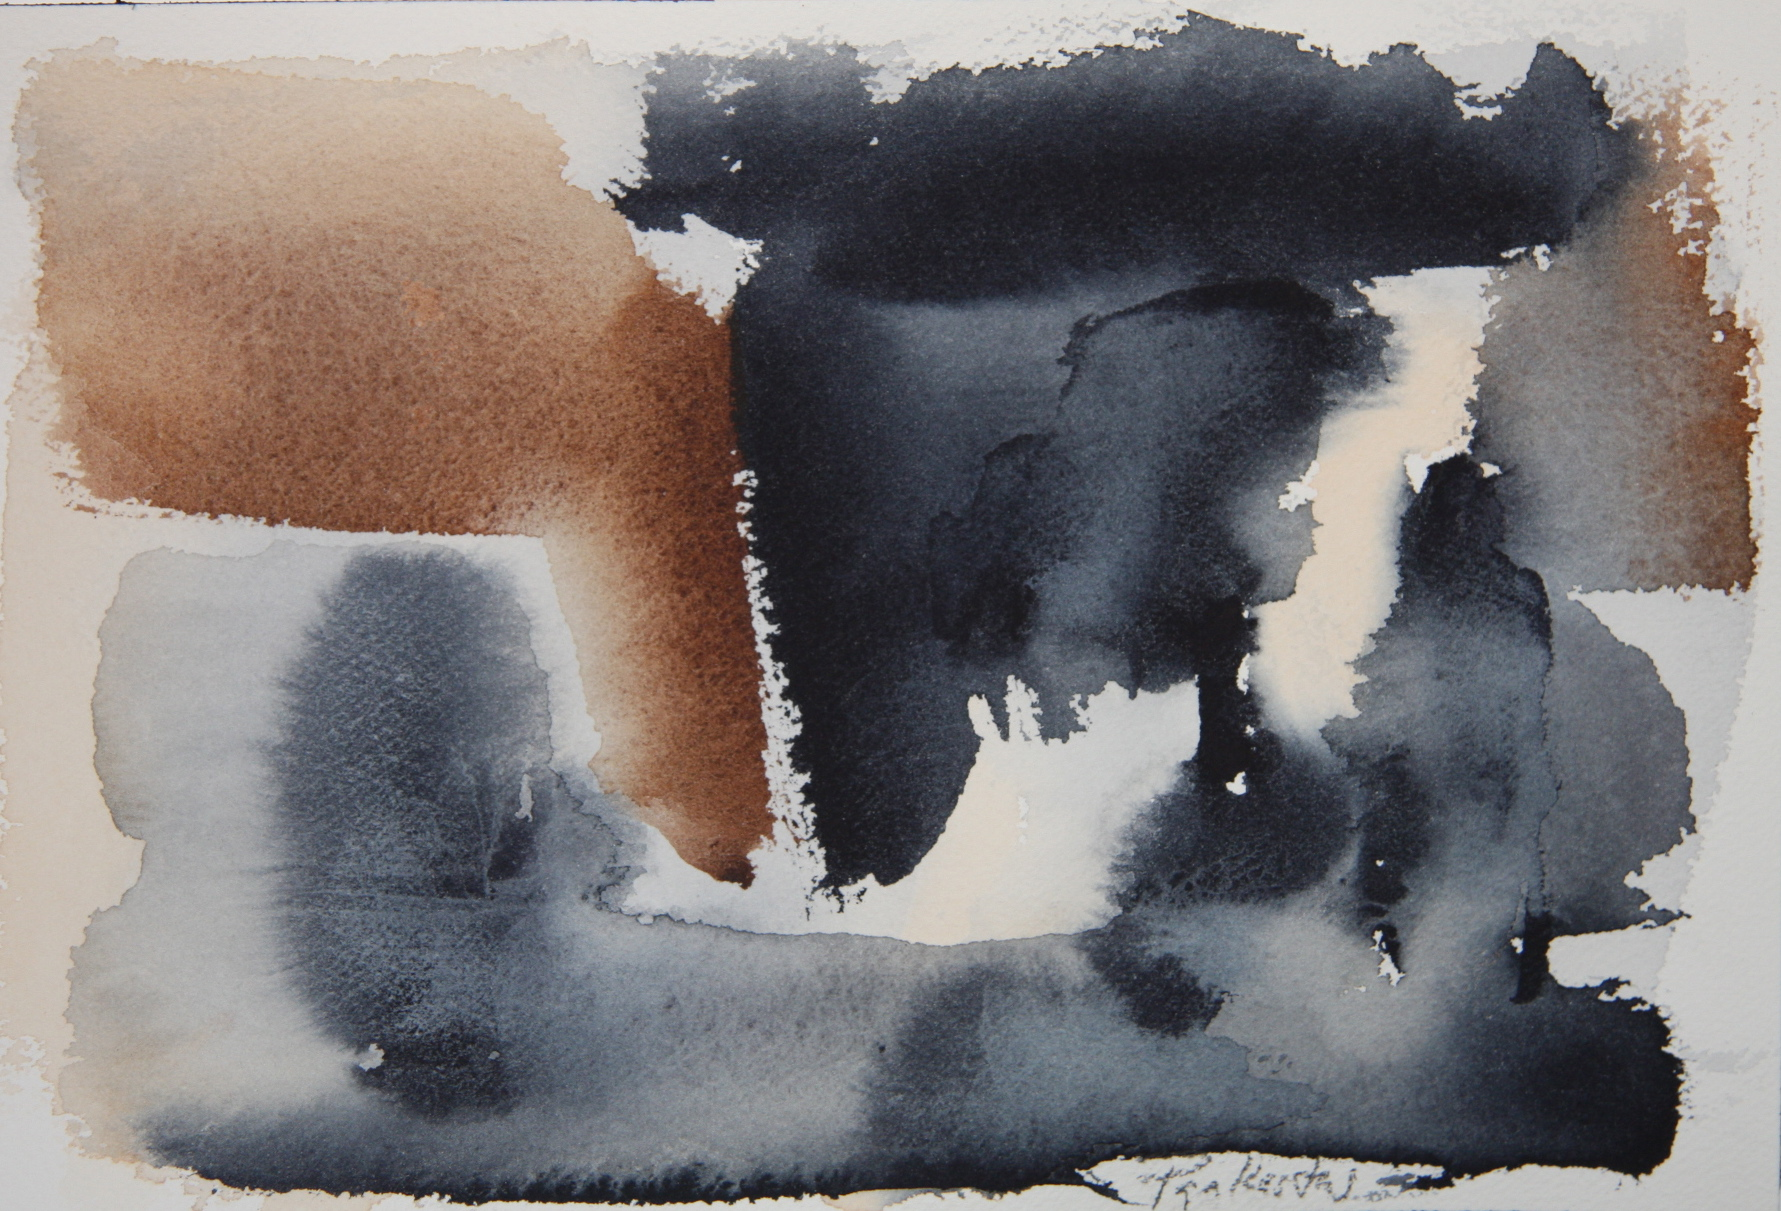 A matter of Being (no.2) - 2012, watercolour on paper 17.78 x 25.40cm (7 x 10in.) IMG_1068.JPG